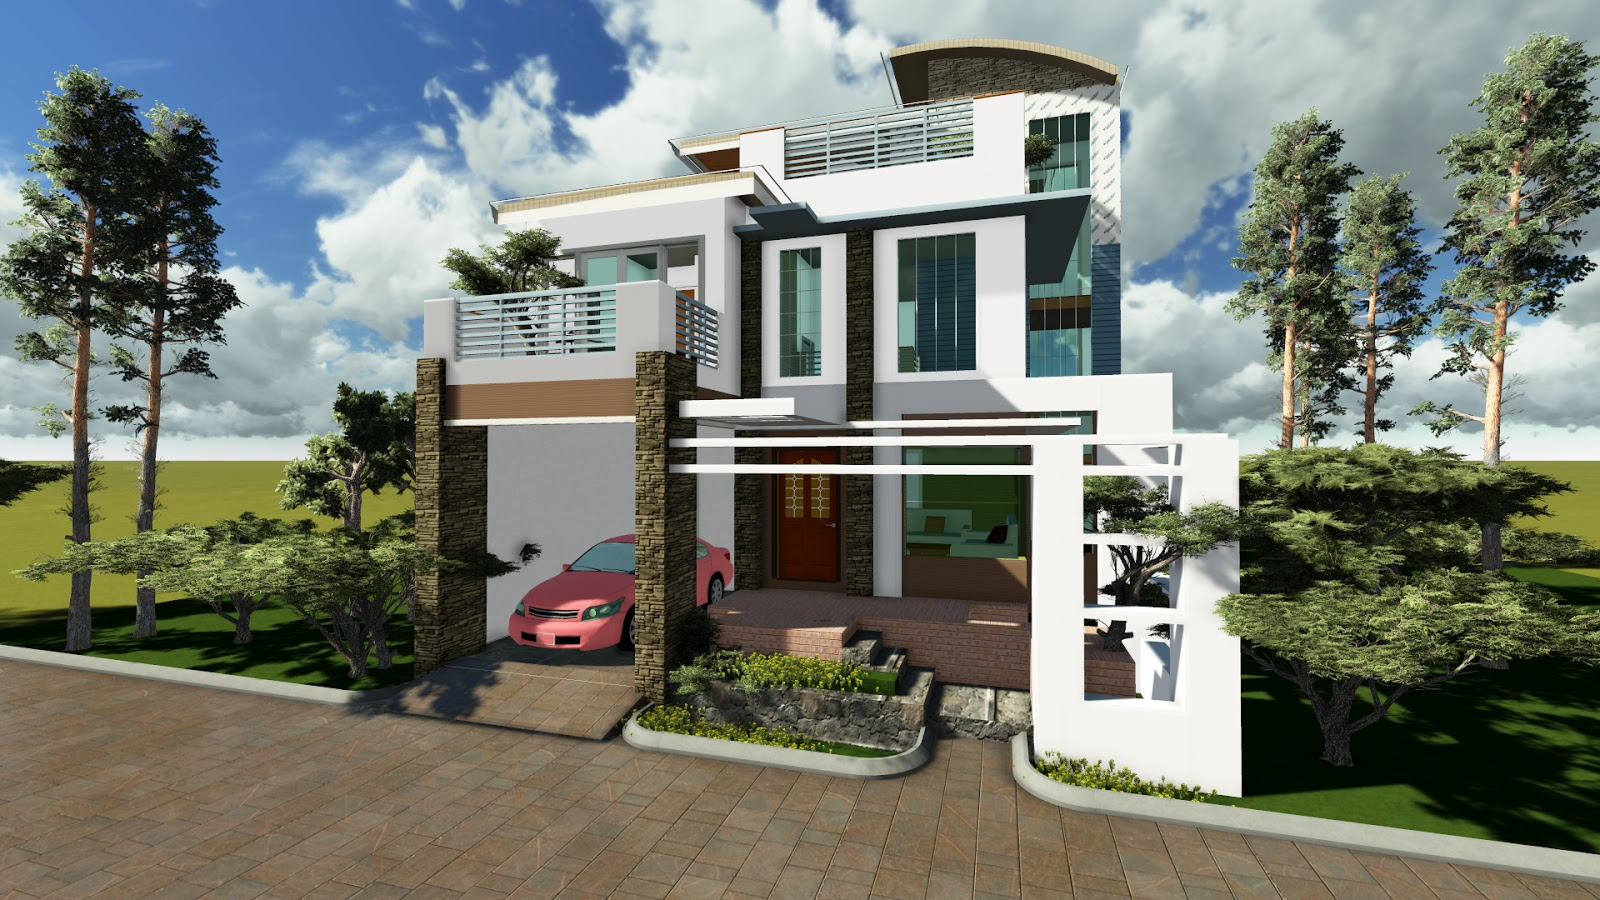 House designs in the philippines in iloilo by erecre group for House models in the philippines